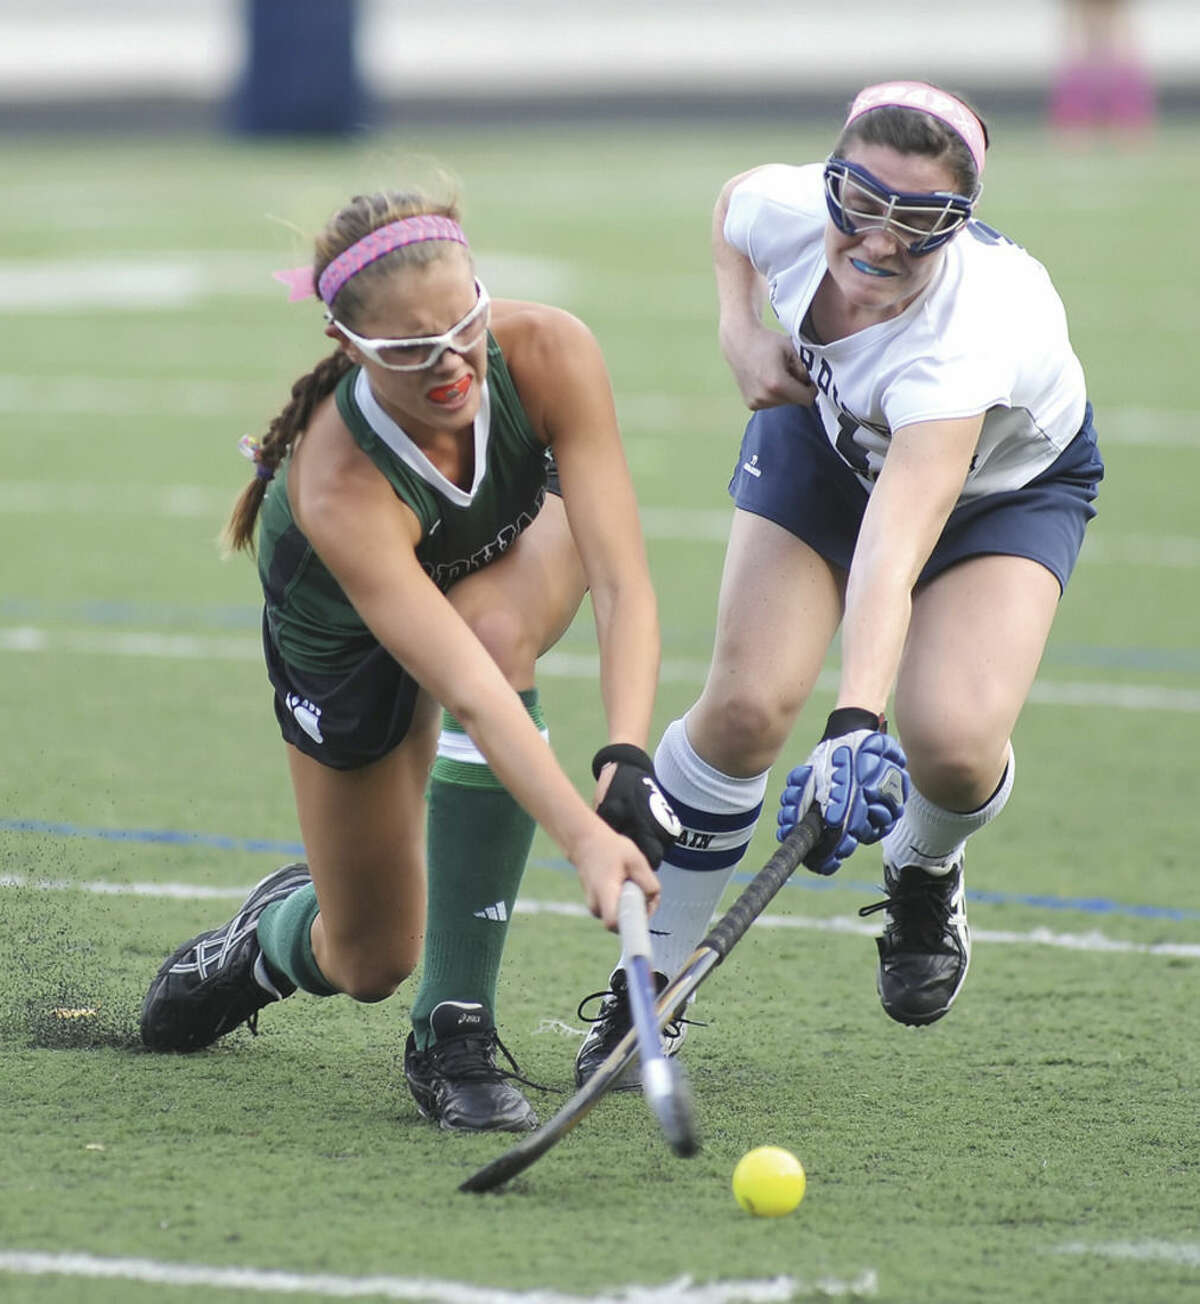 Hour photo/John Nash Norwalk's Samantha Bartush, left, and Wilton's Megan Cunningham fight for possession during Tuesday's FCIAC field hockey game at Fujitani Field in Wilton. The host Warriors came from behind to post a 2-1 win.